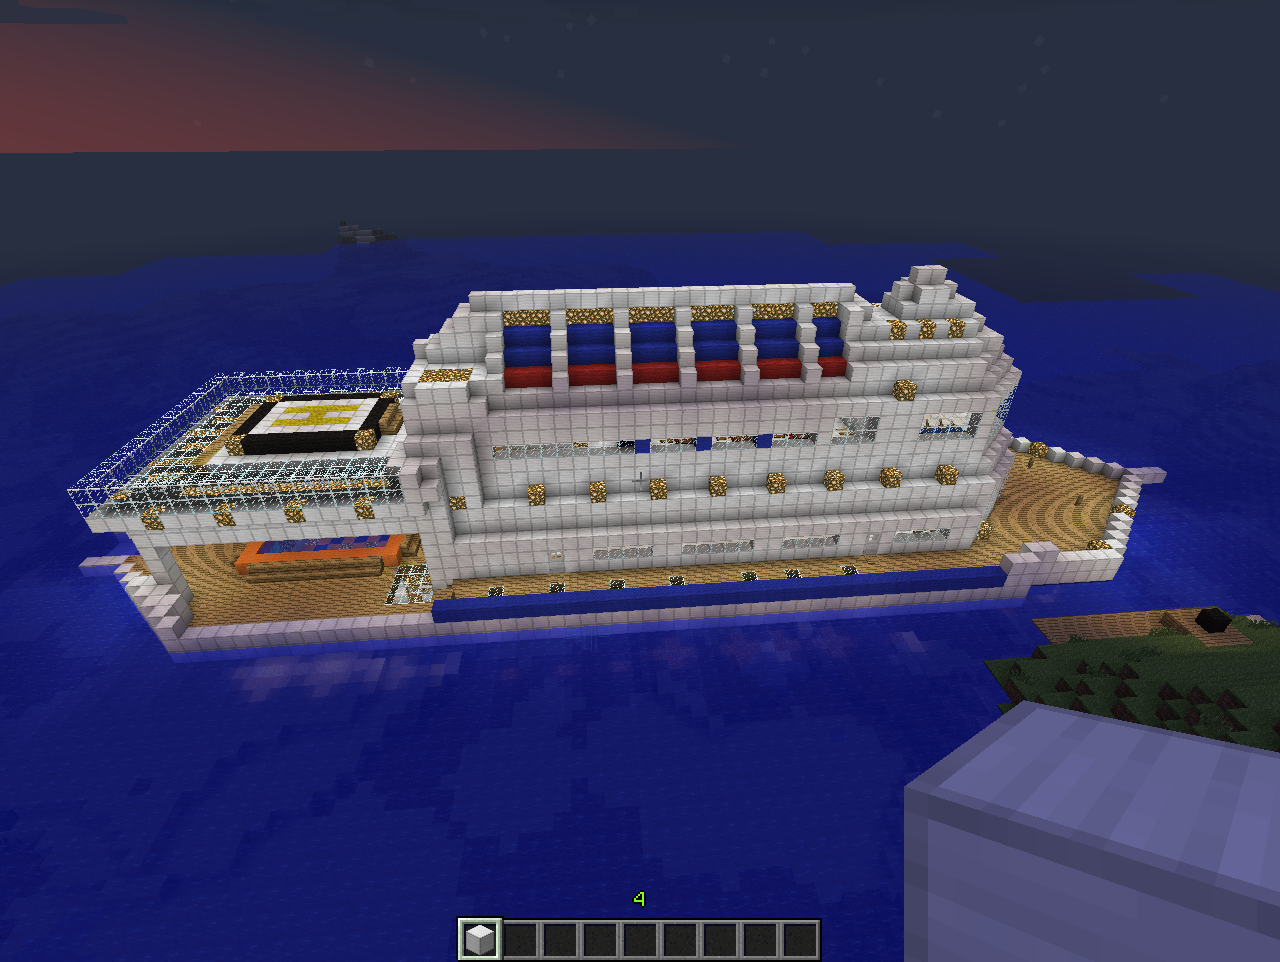 Download Boat Minecraft Cake Ideas And Designs